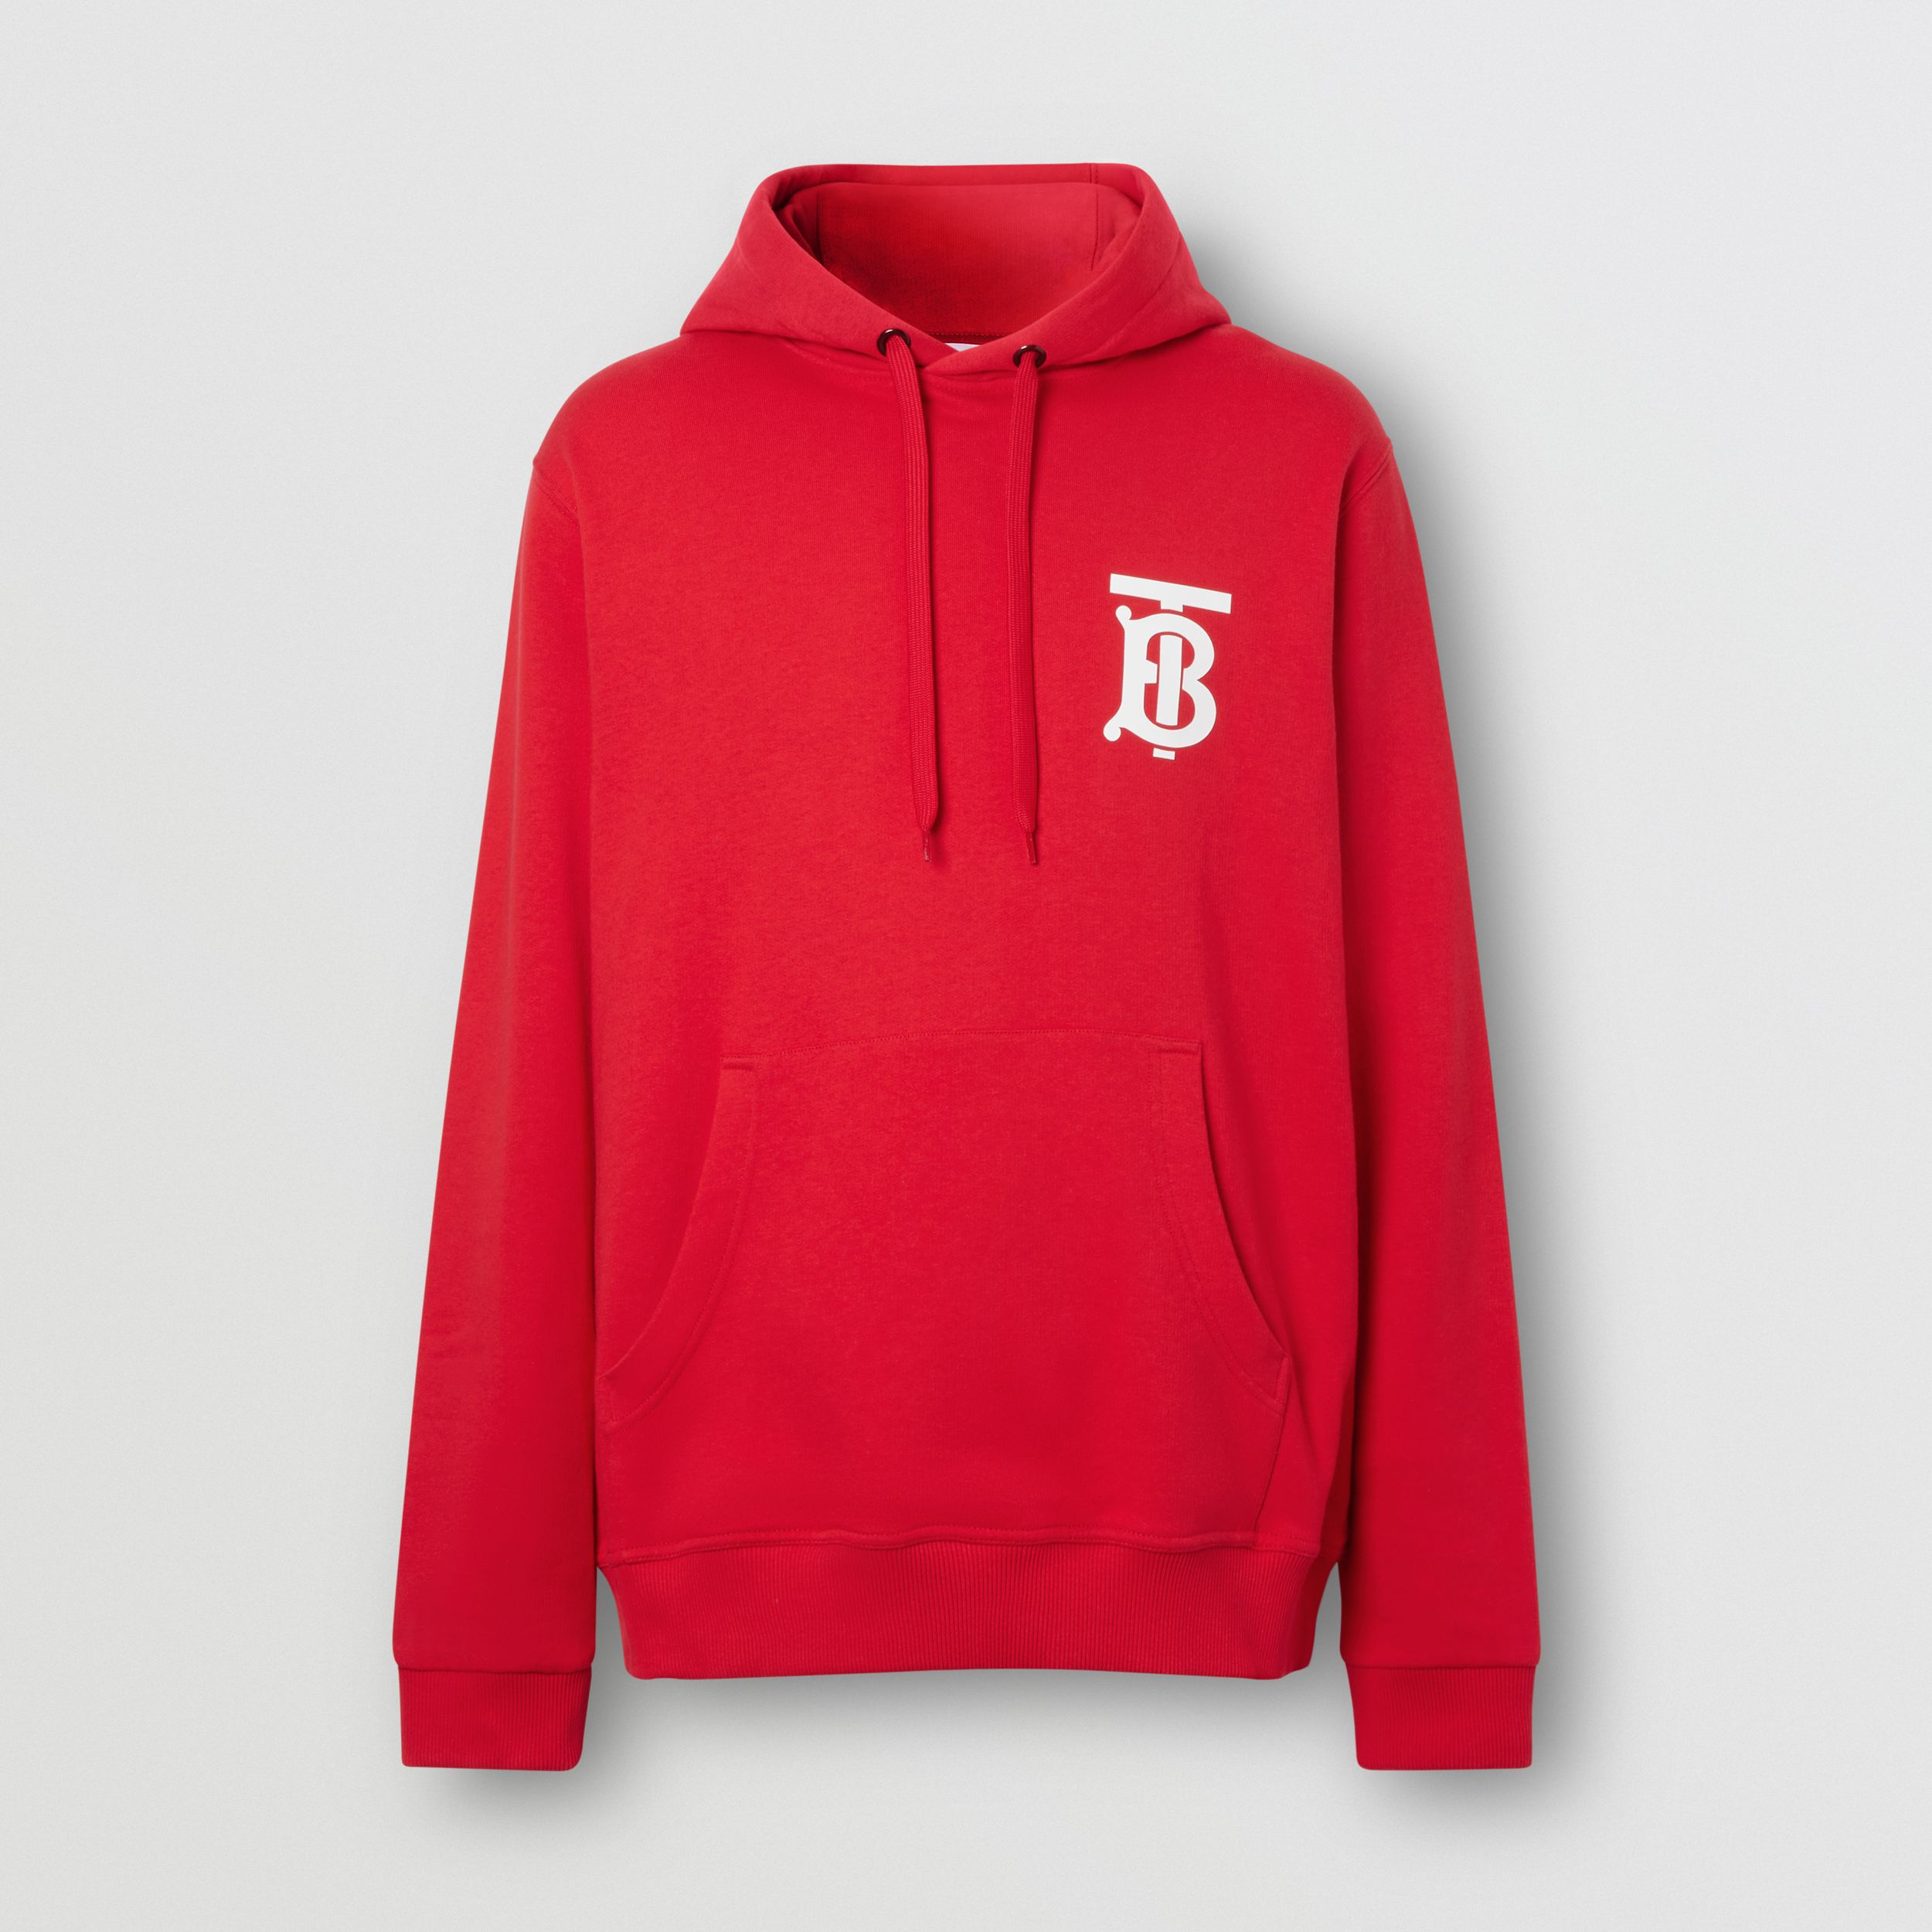 Monogram Motif Cotton Hoodie in Bright Red - Men | Burberry Australia - 4